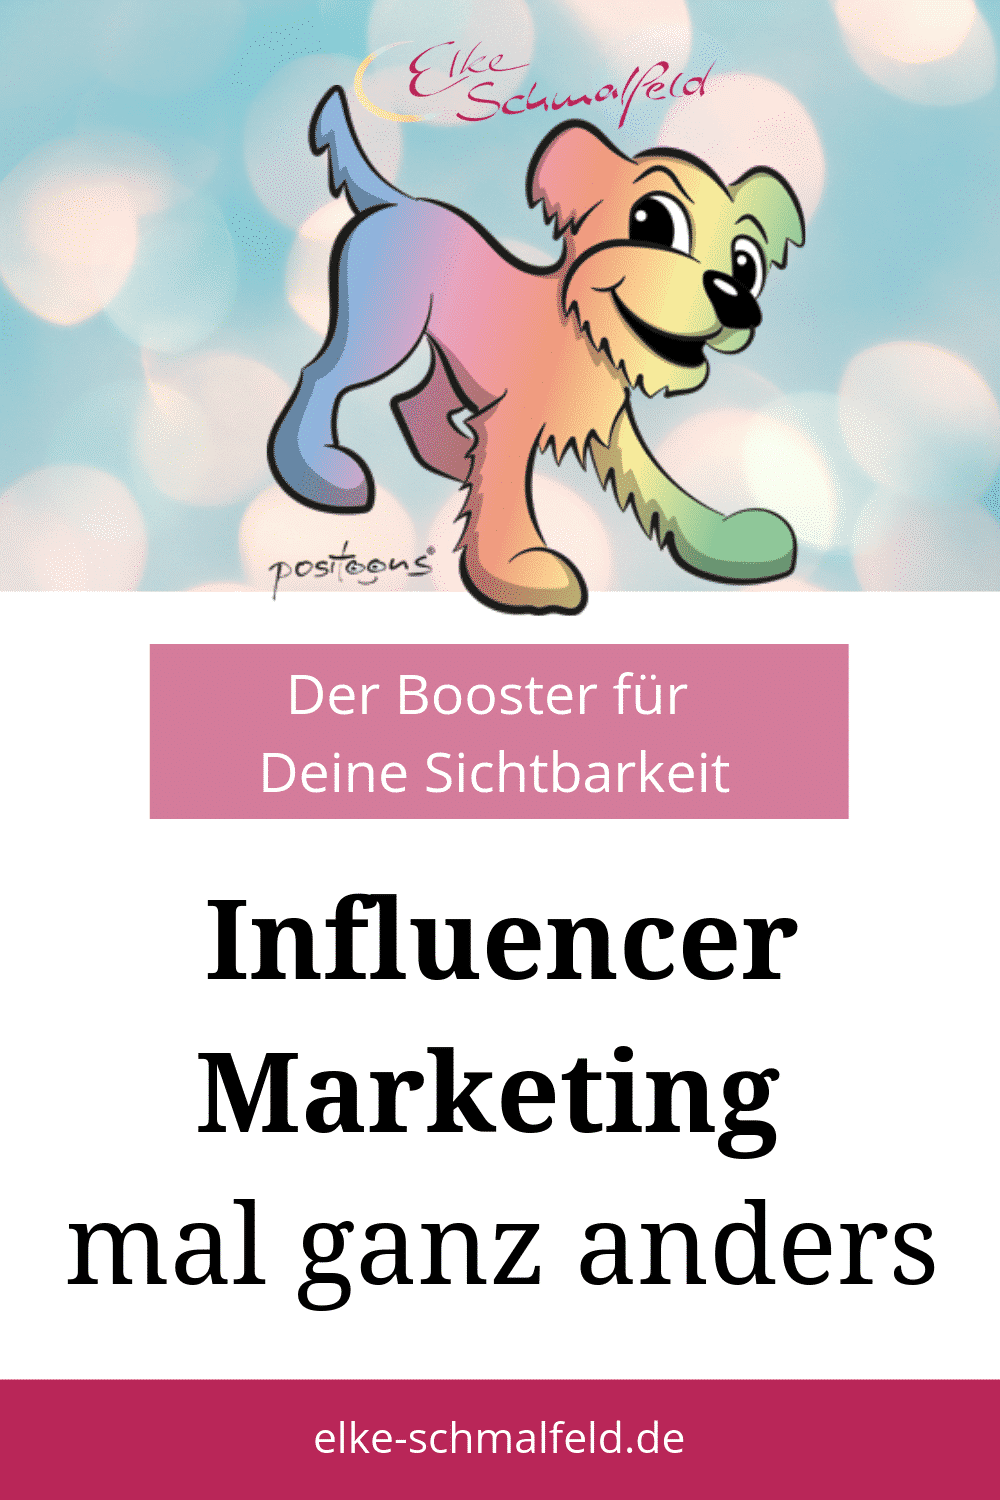 Influencer Marketing anders gedacht